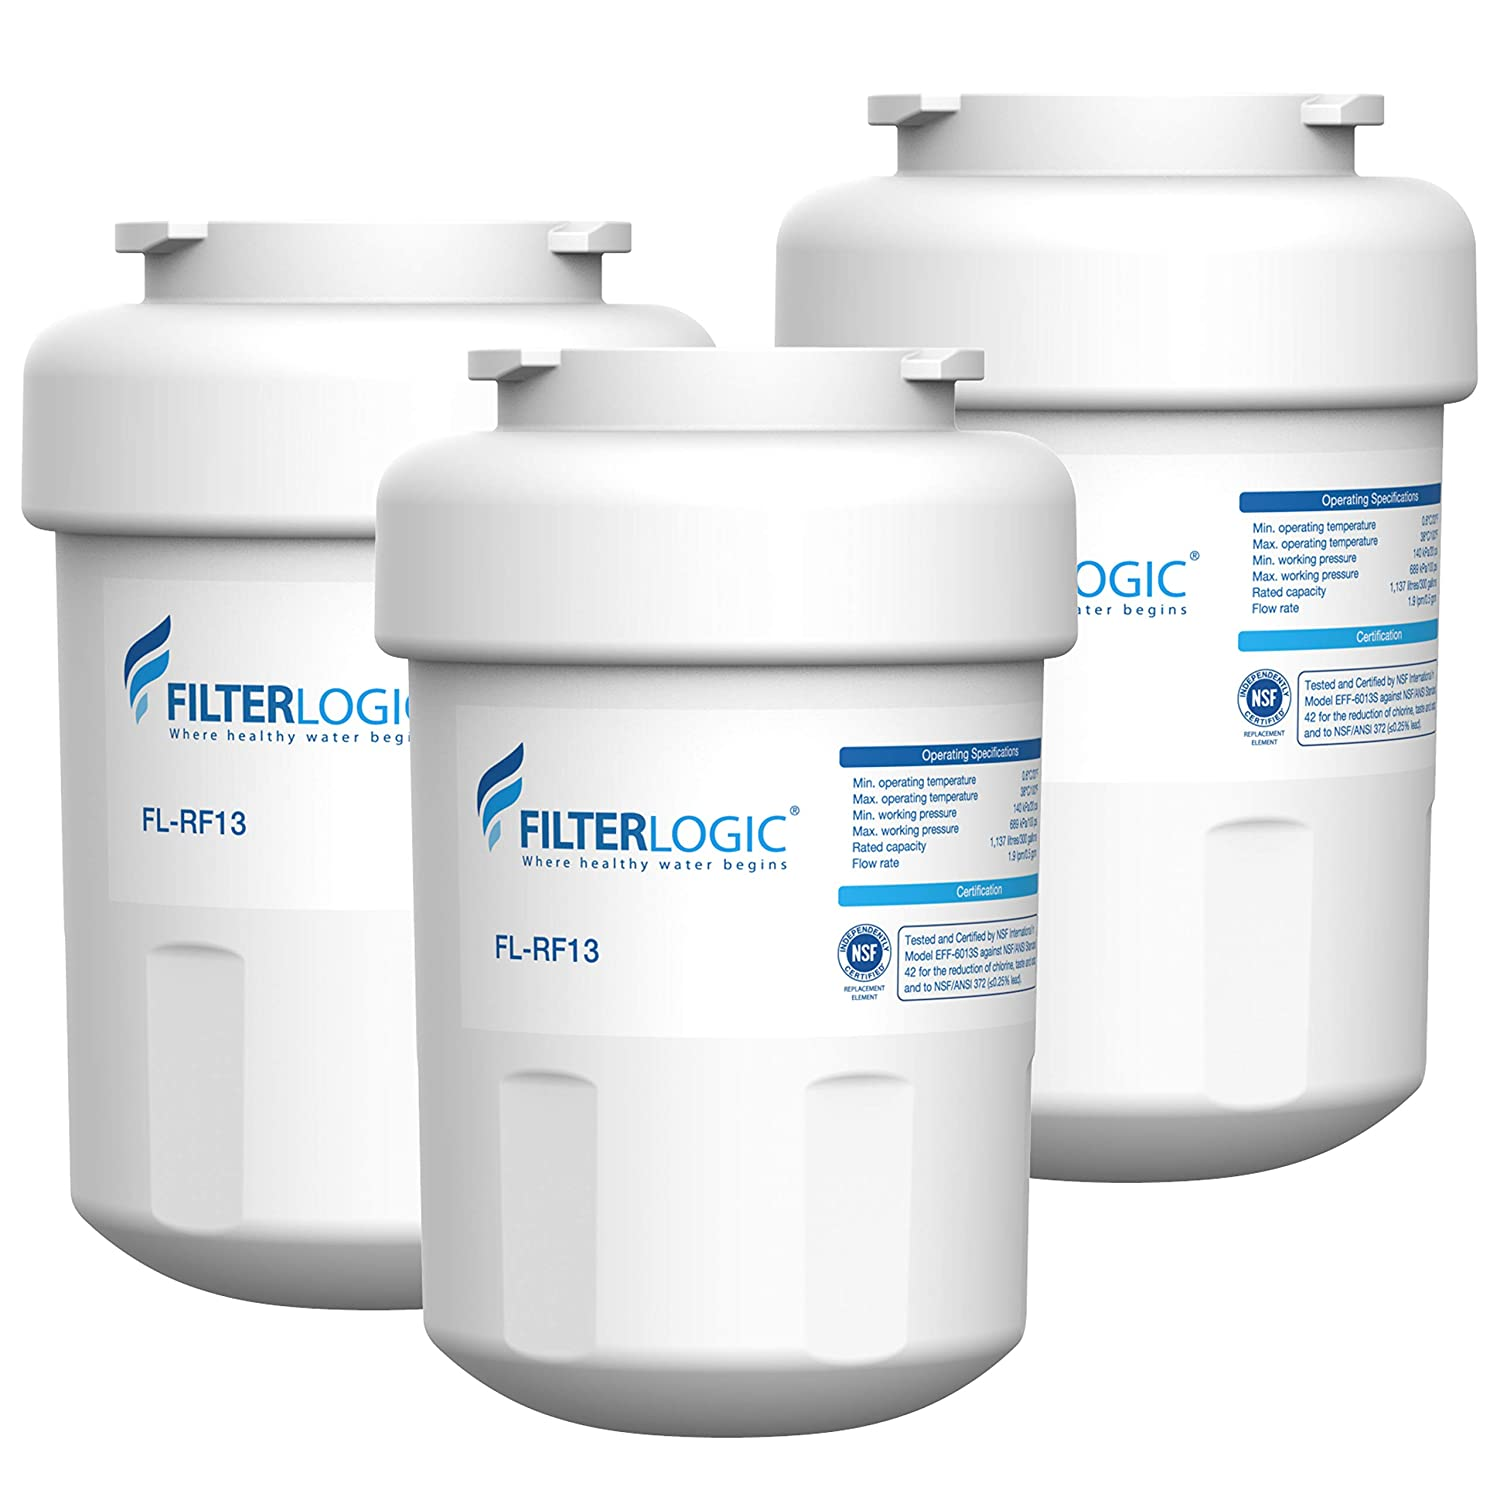 FilterLogic MWF Refrigerator Water Filter, Replacement for GE SmartWater MWFP, MWFA, GWF, HDX FMG-1, WFC1201, GSE25GSHECSS, PC75009, RWF1060, 197D6321P006, Kenmore 9991 (Pack of 3)